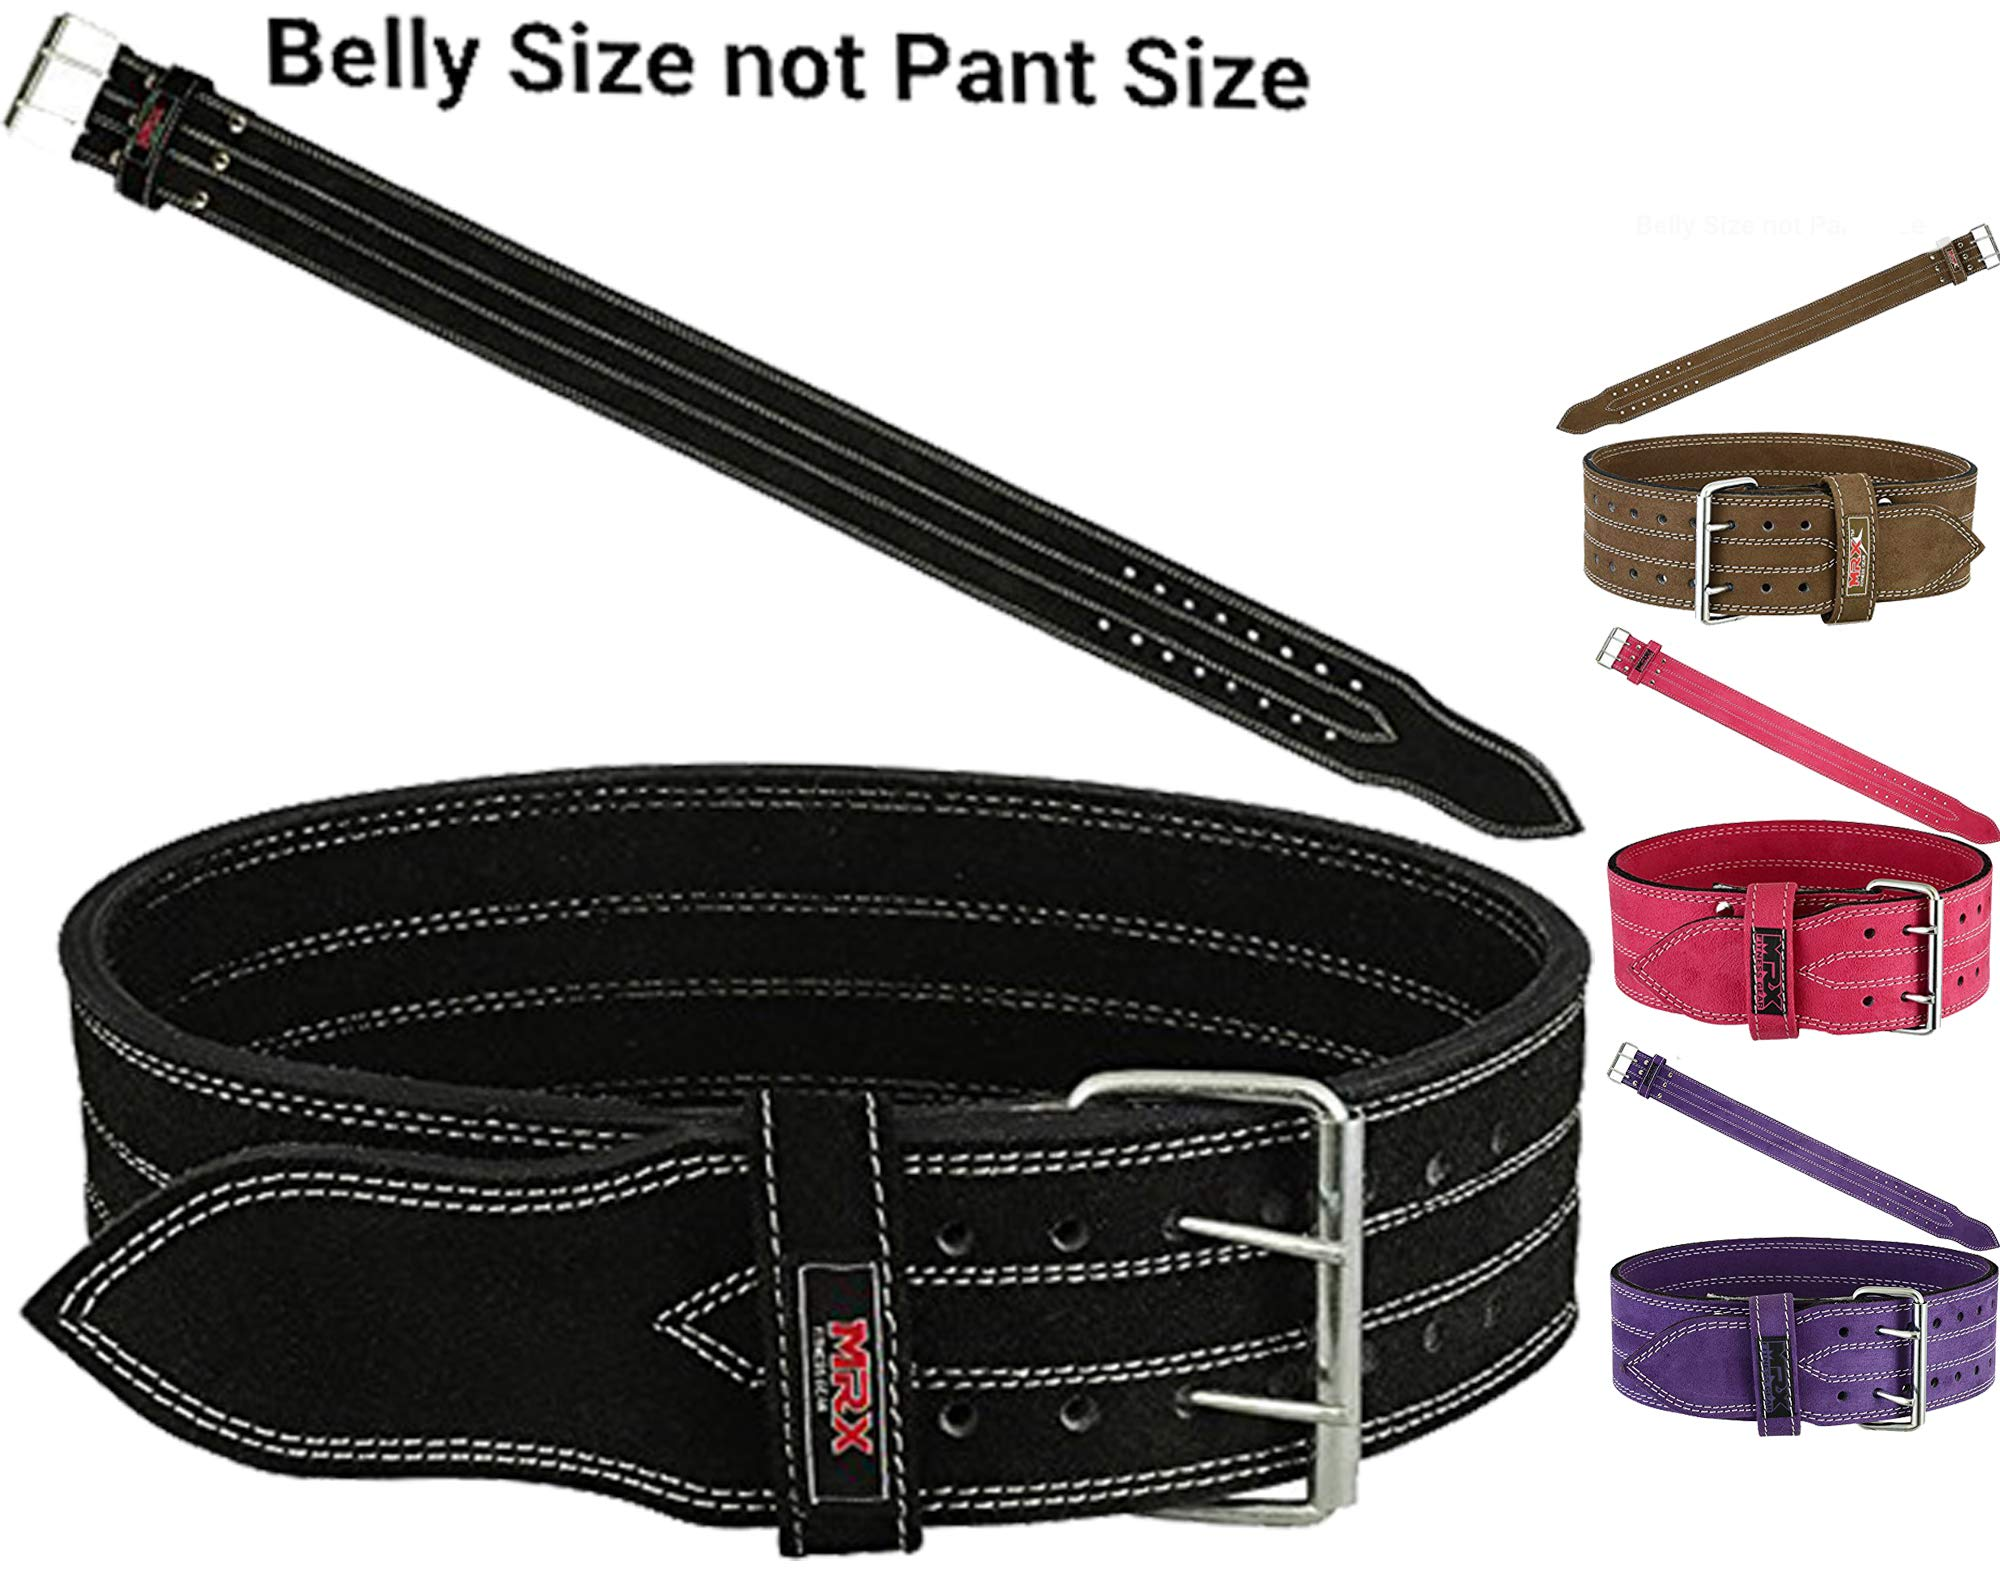 MRX Powerlifting Leather Belt 4'' Wide 10mm Thickness Training Fitness Back Support Bodybuilding Belts with Steel 2 Prong Buckle Black (XXL)